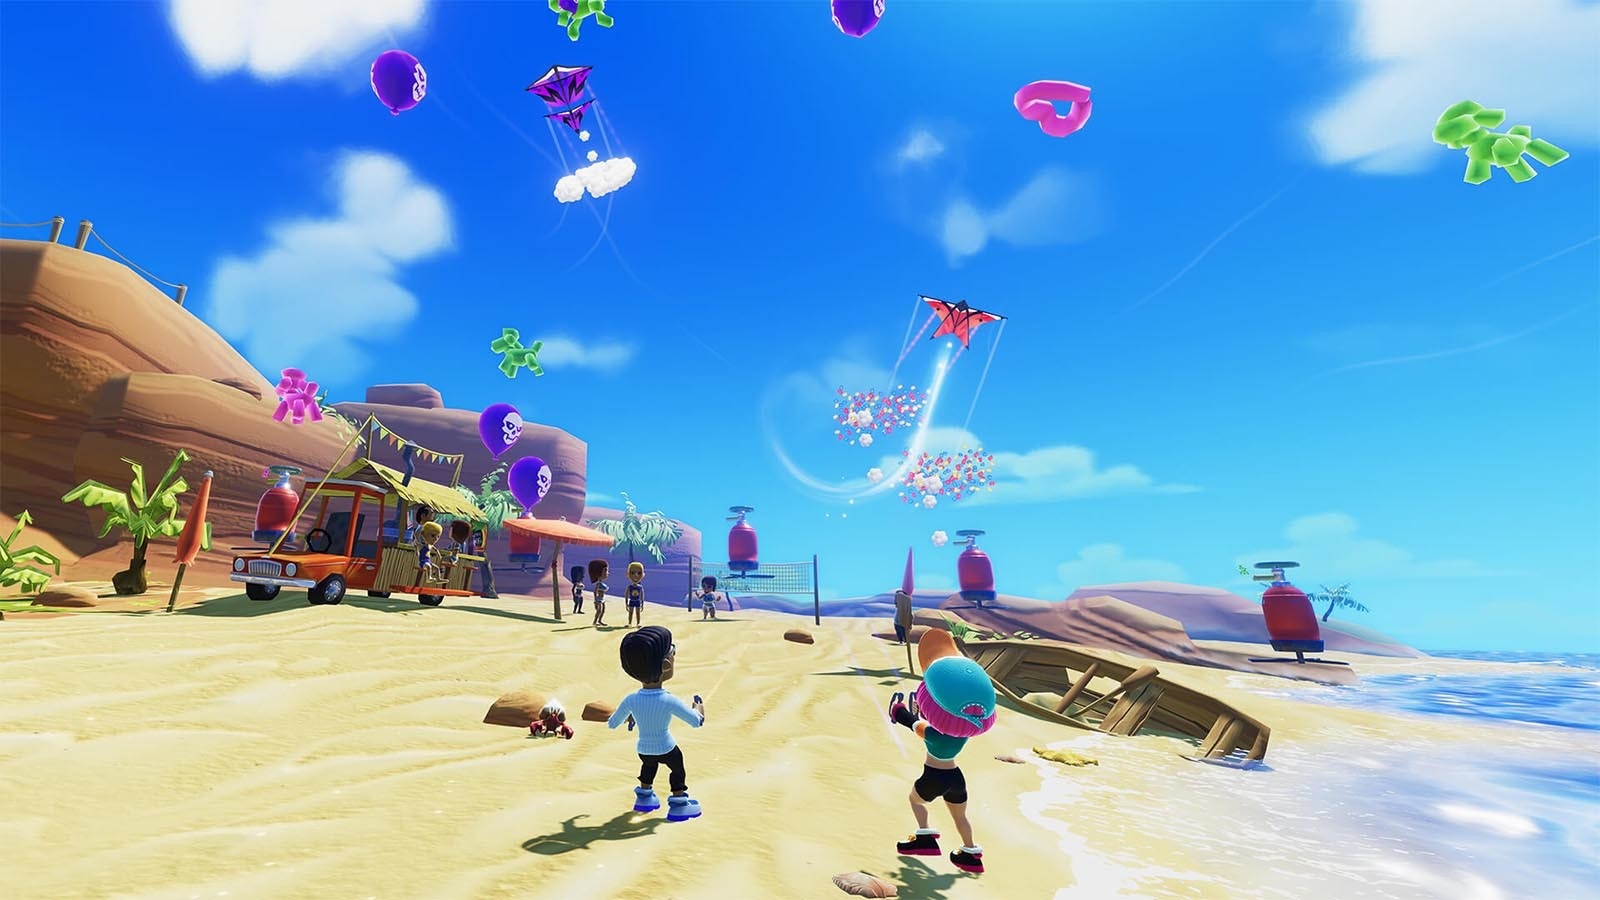 Stunt Kite Party [Steam CD Key] for PC - Buy now